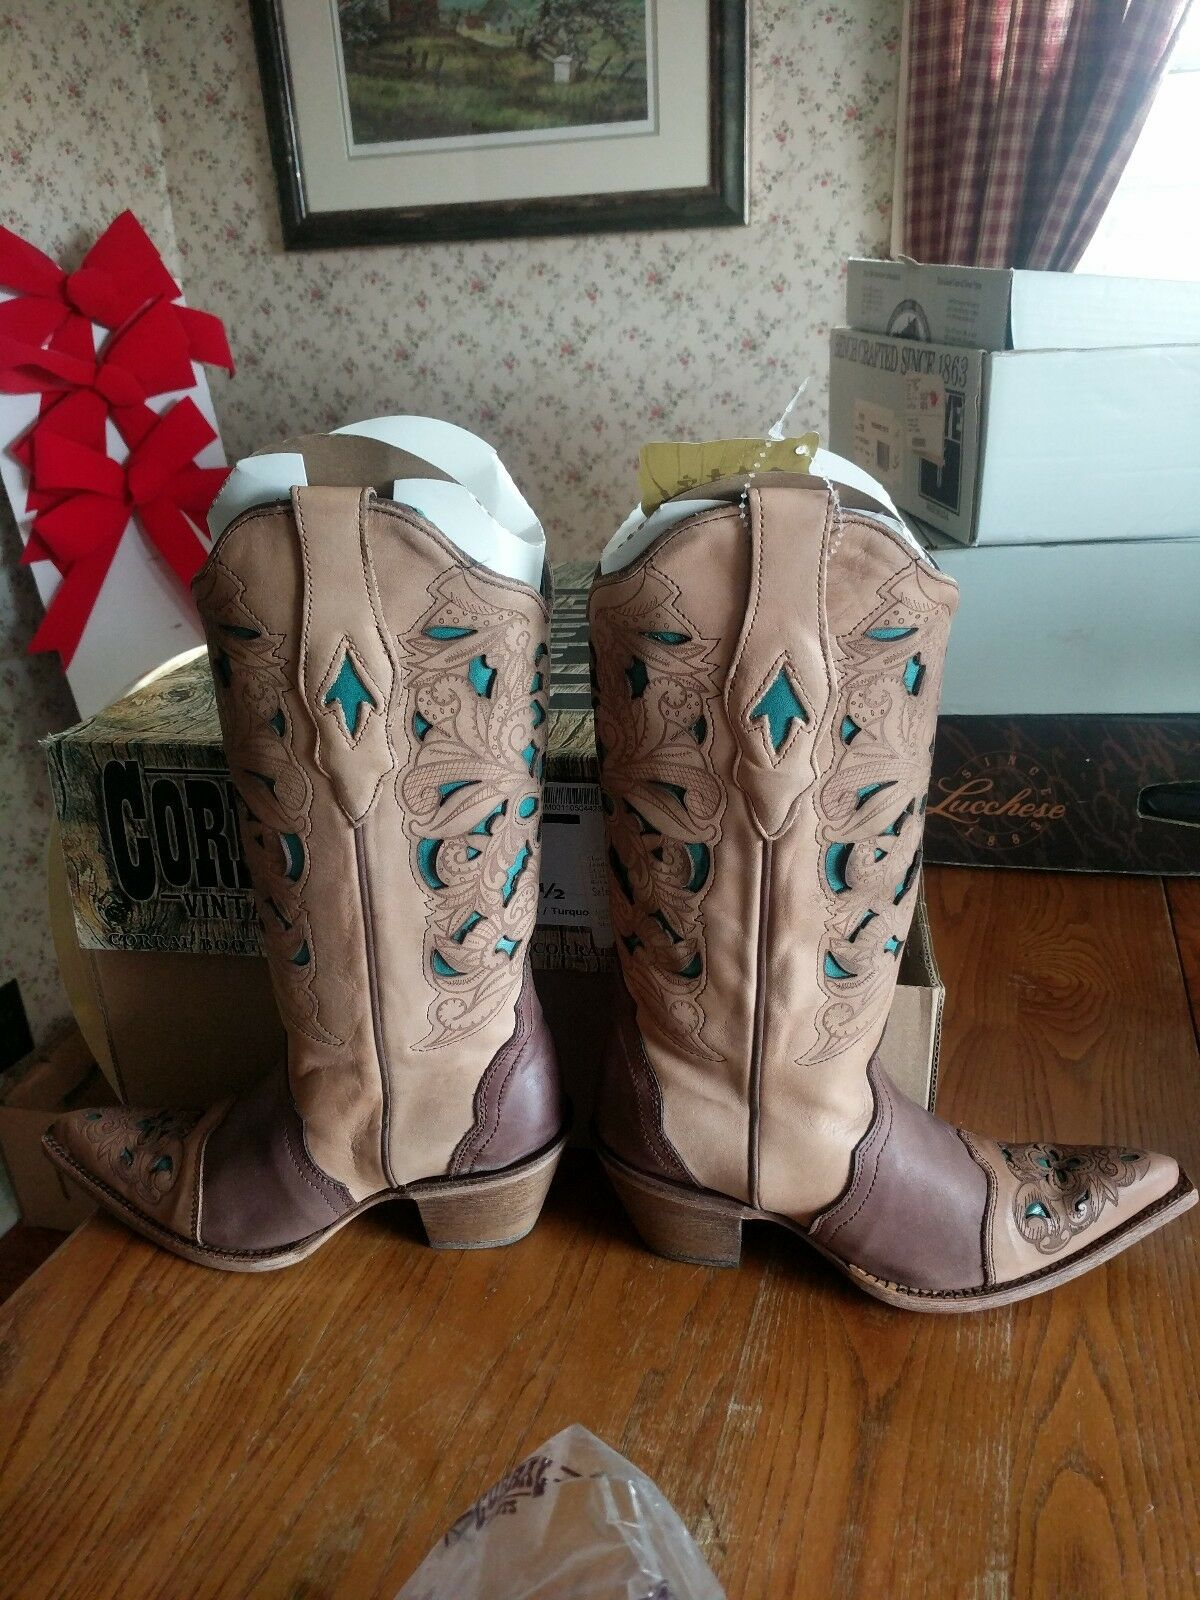 New Corral Vintage C1620 Brown Turquoise Laser Tool Cowboy Western Boots 6.5